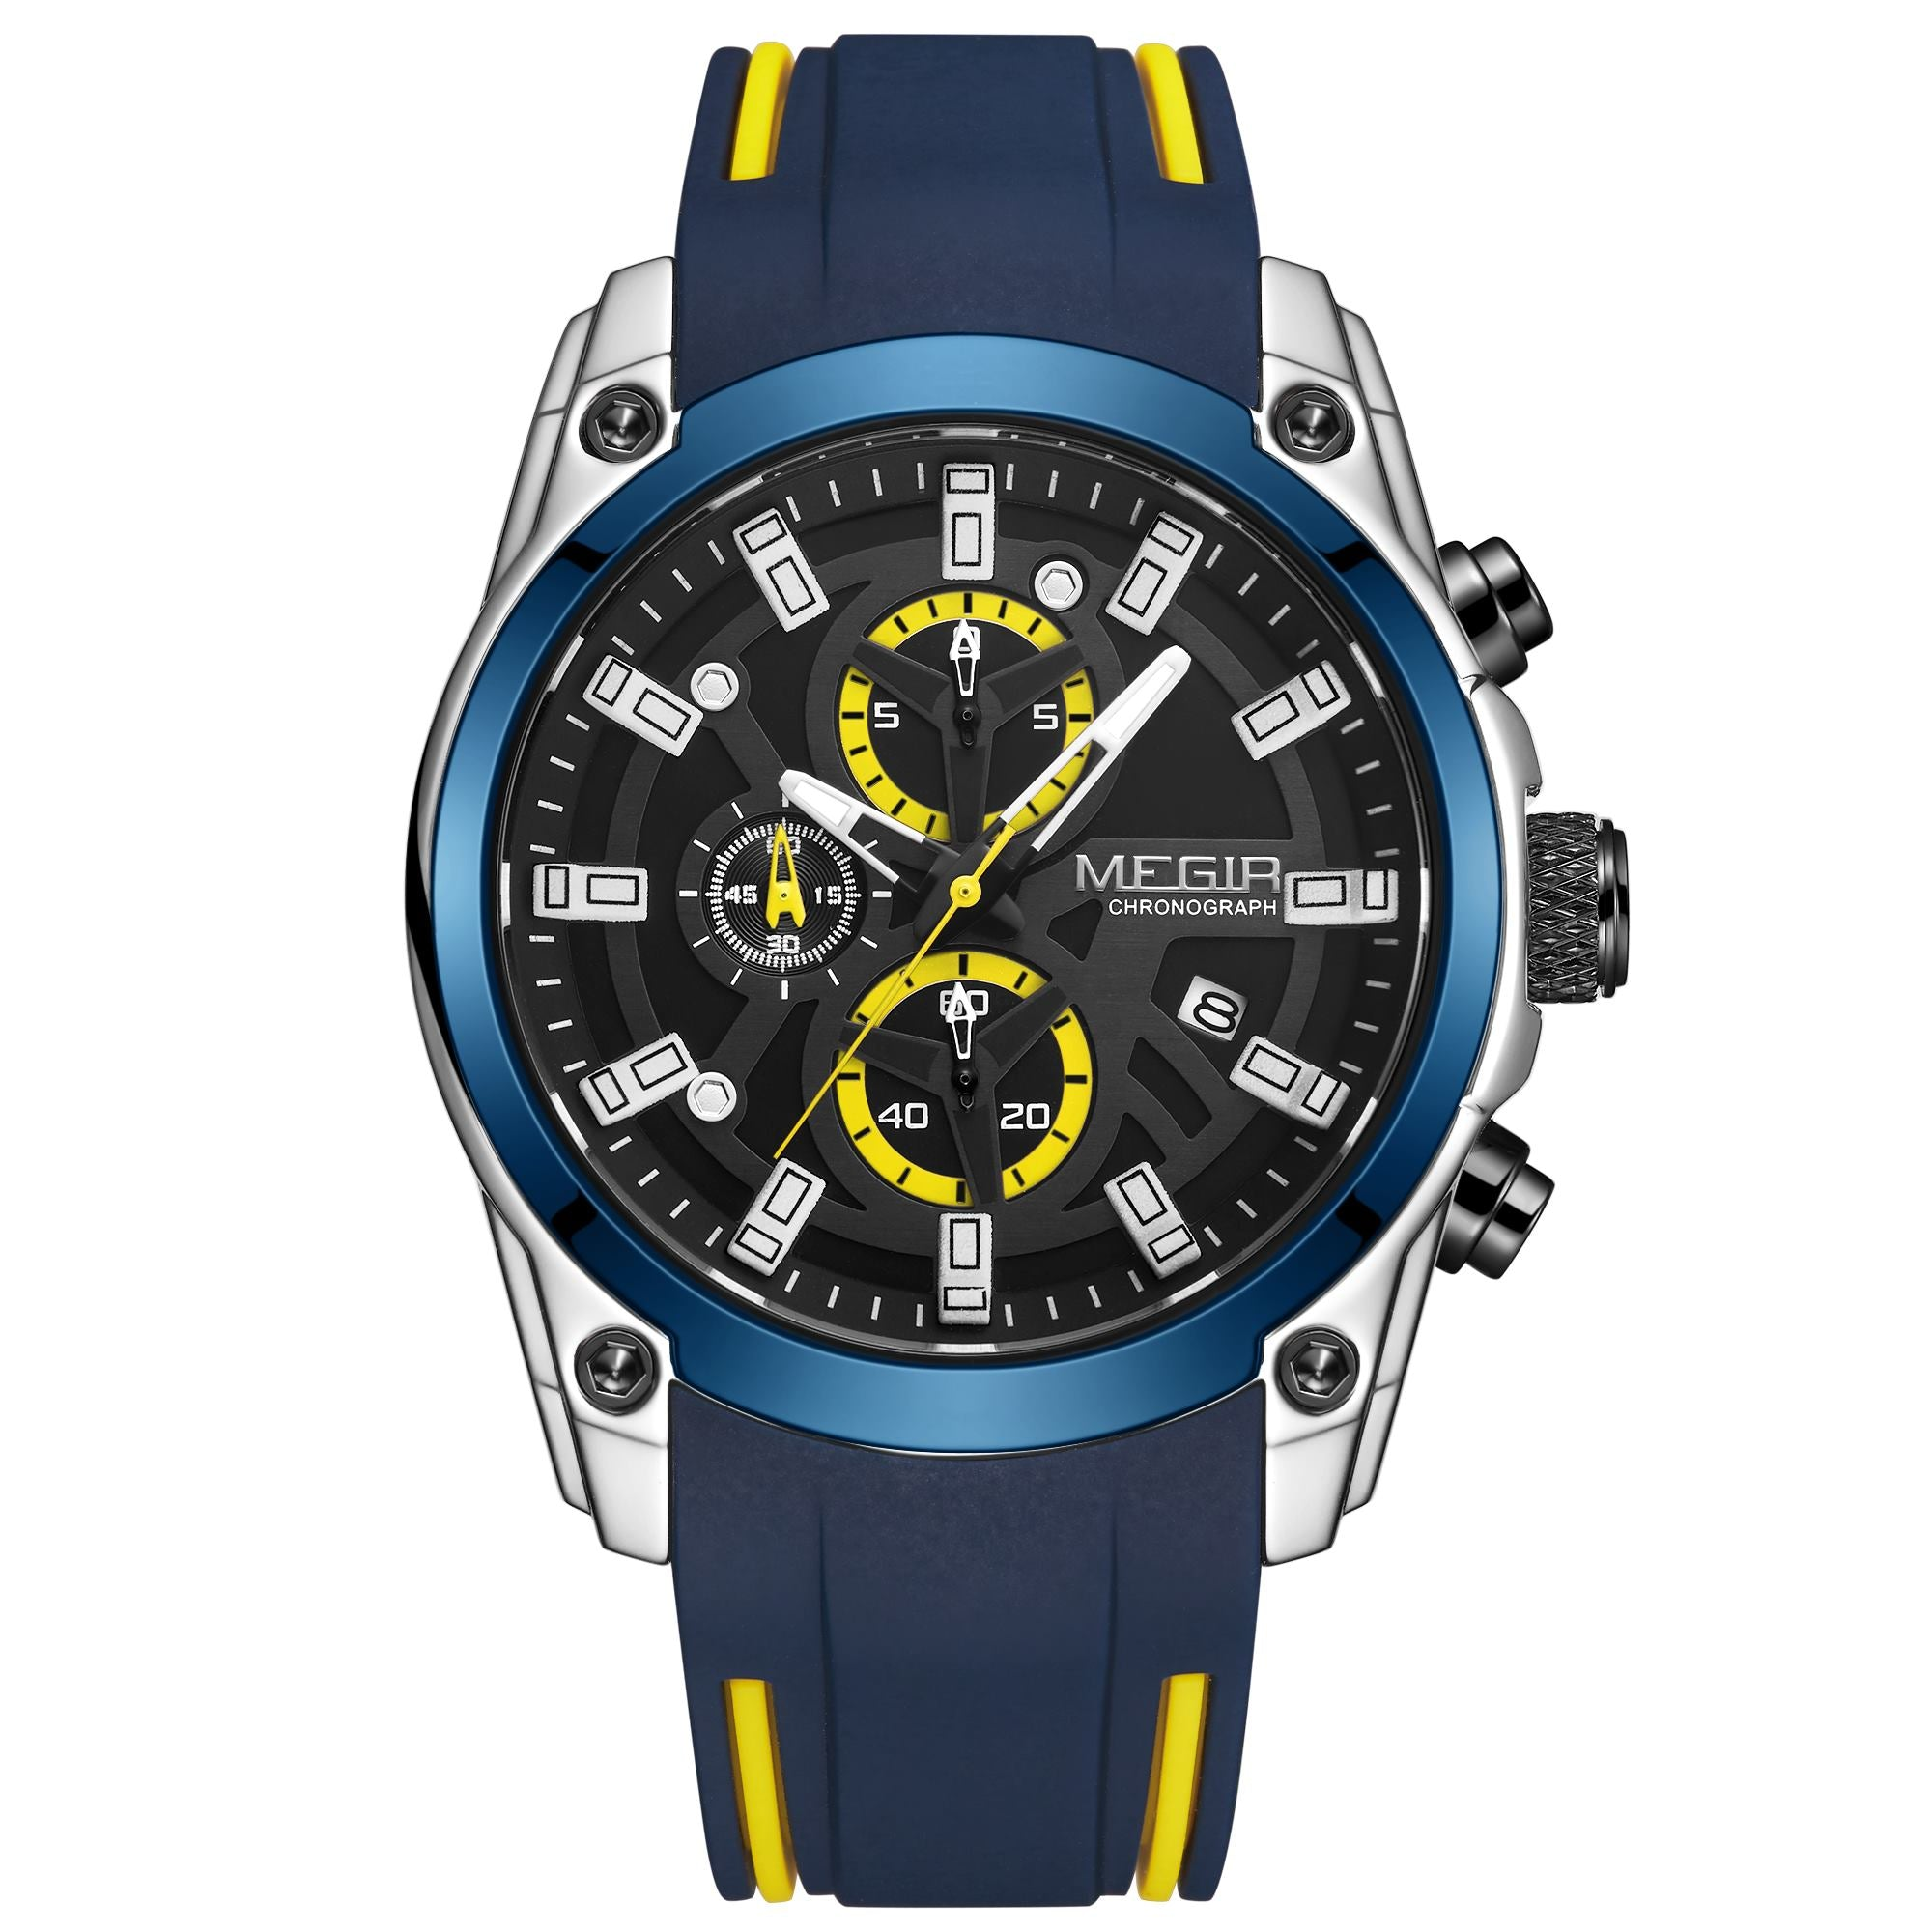 MEGIR Original men's watch, sport business quartz watch 2144